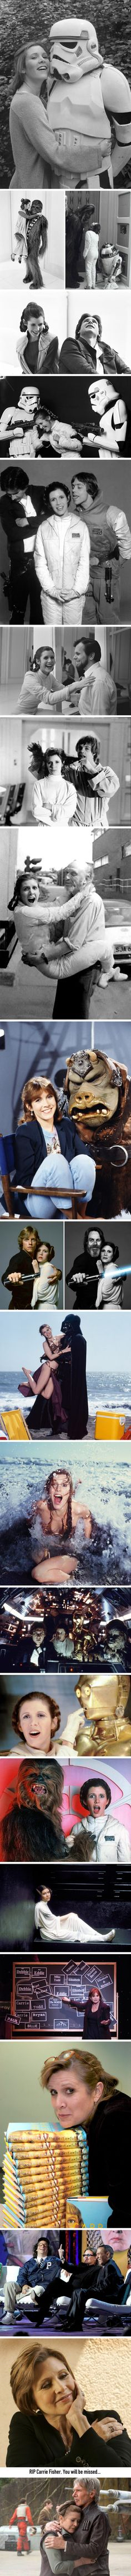 21 Photos Of Carrie Fisher That Will Make You Miss Her Even More - 9GAG